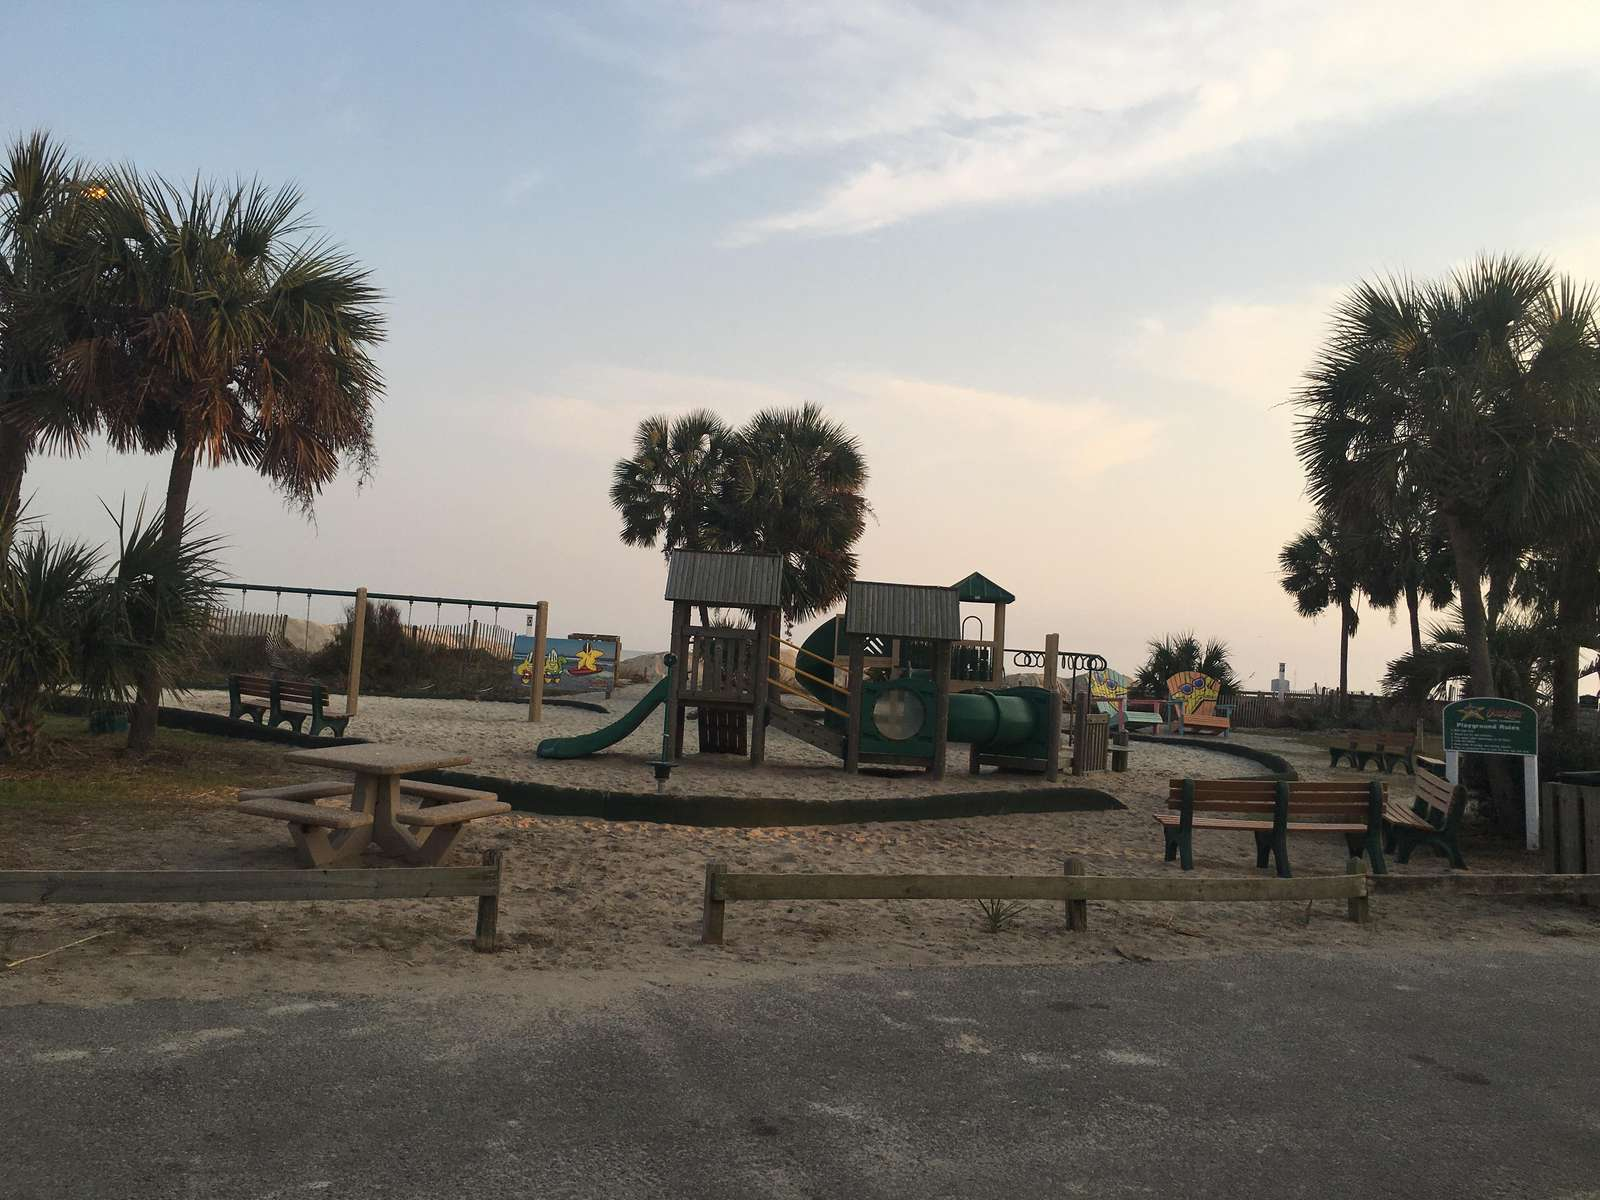 One of 2 playgrounds